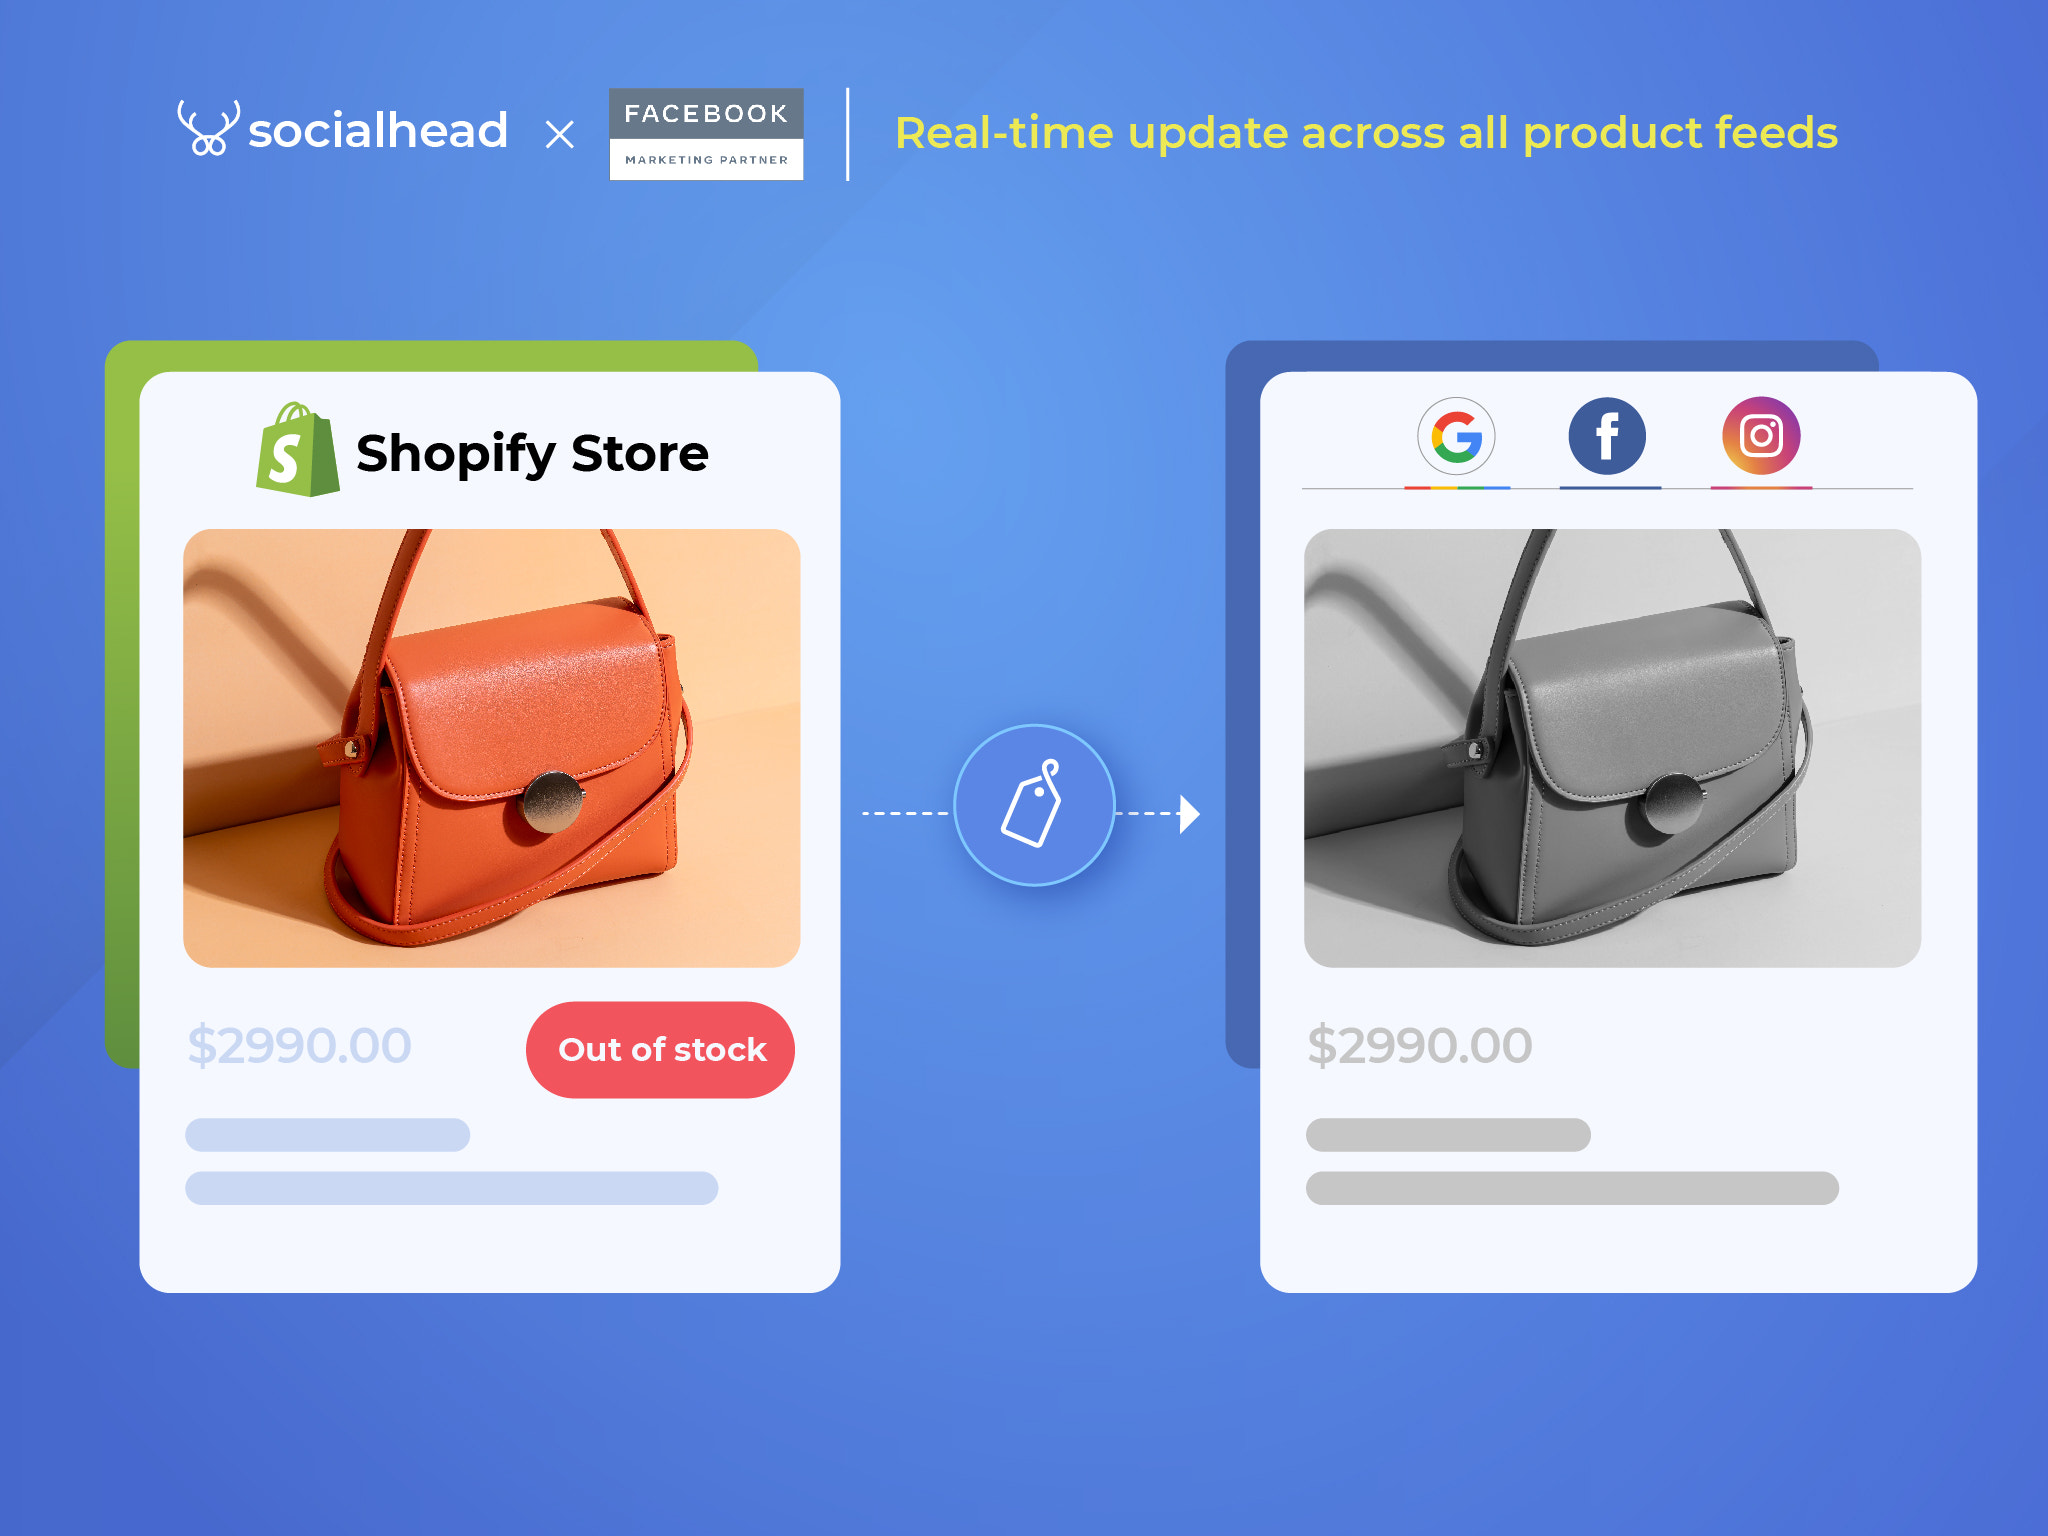 Real time update across all product feeds